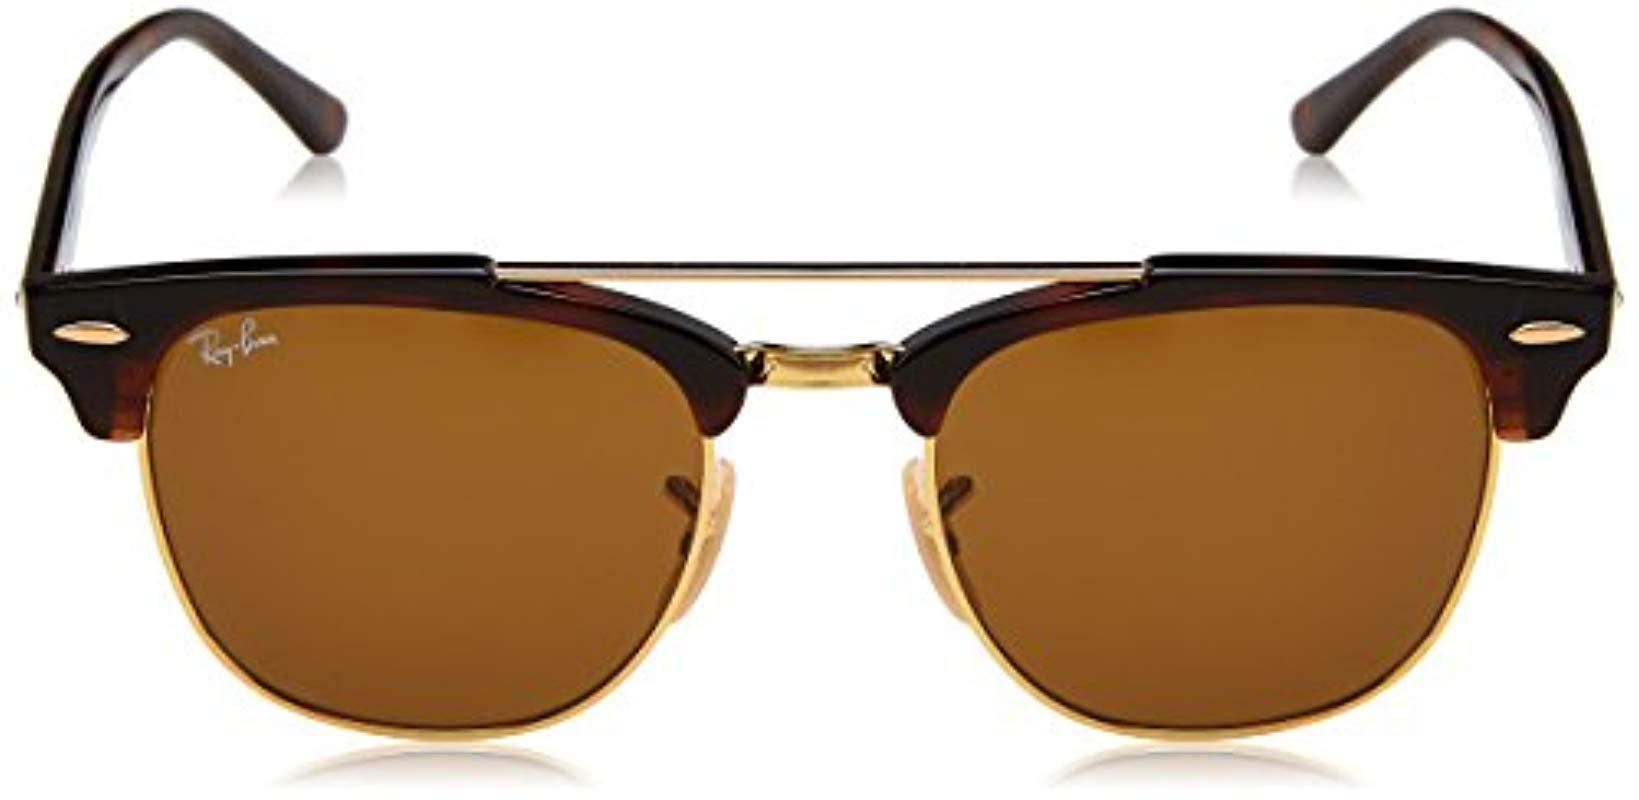 05523ce6f90 Ray-Ban - Clubmaster Double Bridge Sunglasses In Havana Brown Rb3816 990 33  51. View fullscreen